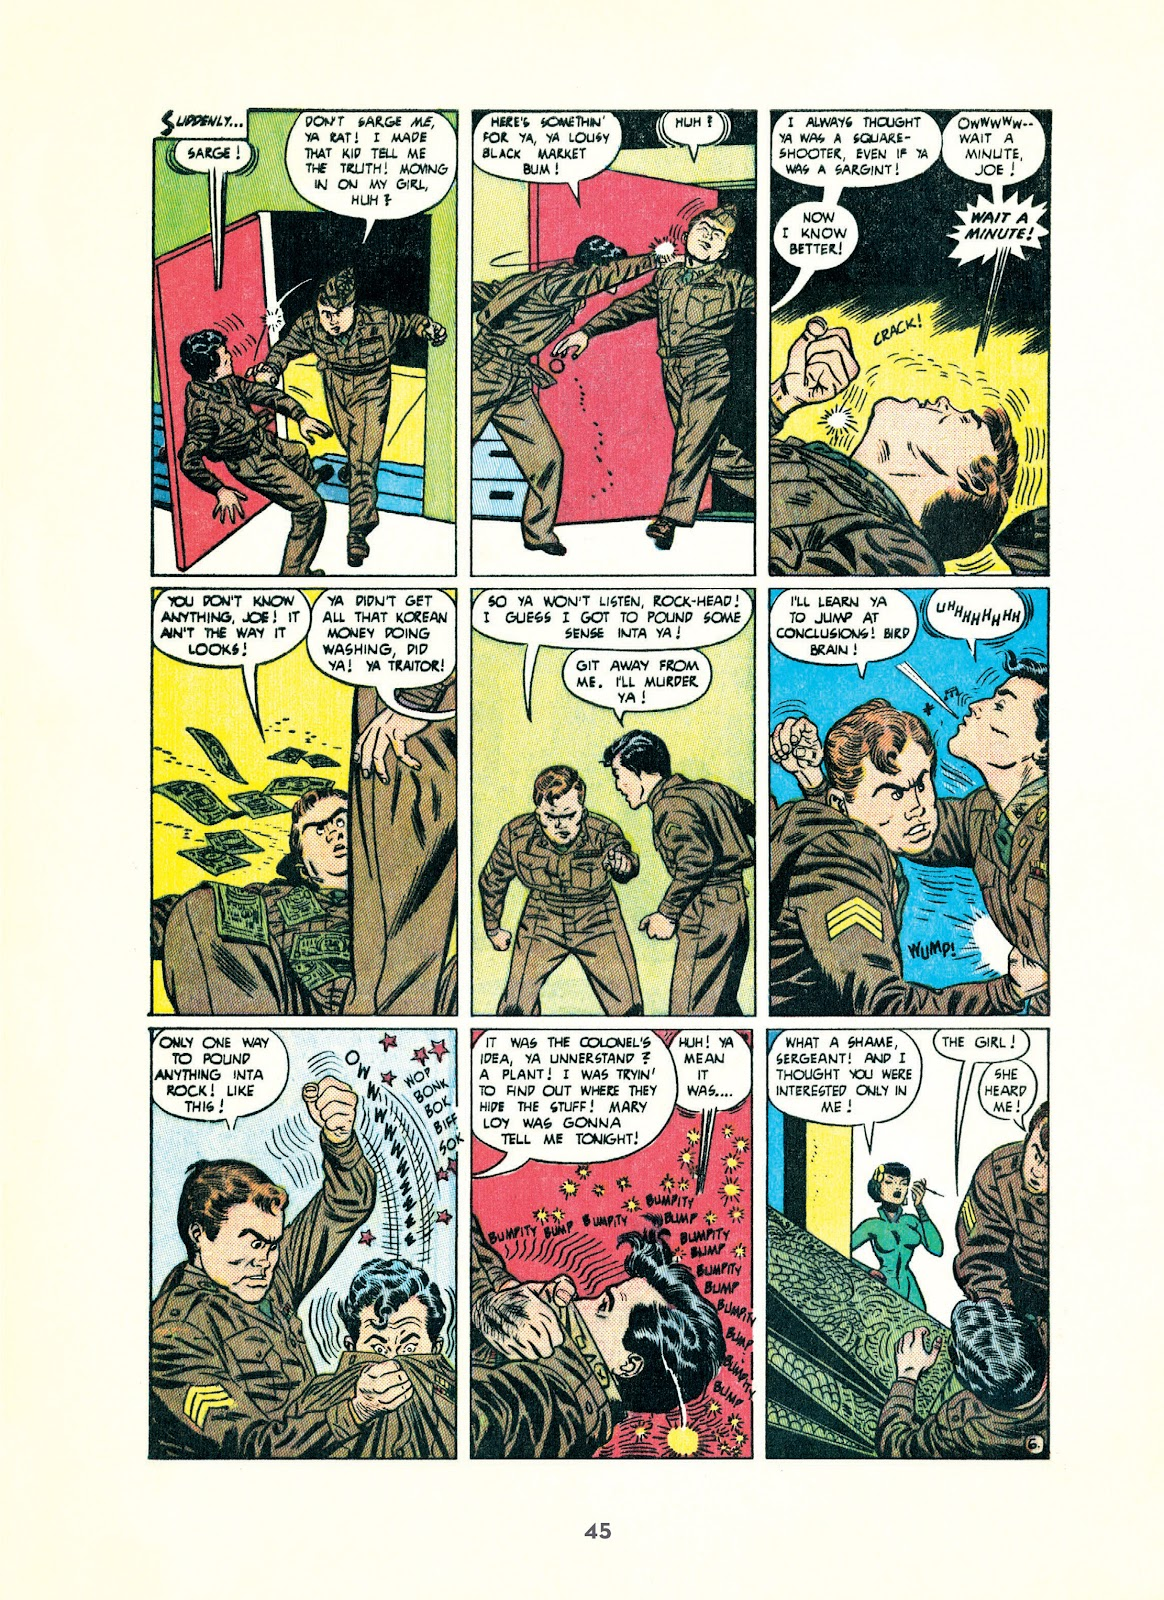 Read online Setting the Standard: Comics by Alex Toth 1952-1954 comic -  Issue # TPB (Part 1) - 44